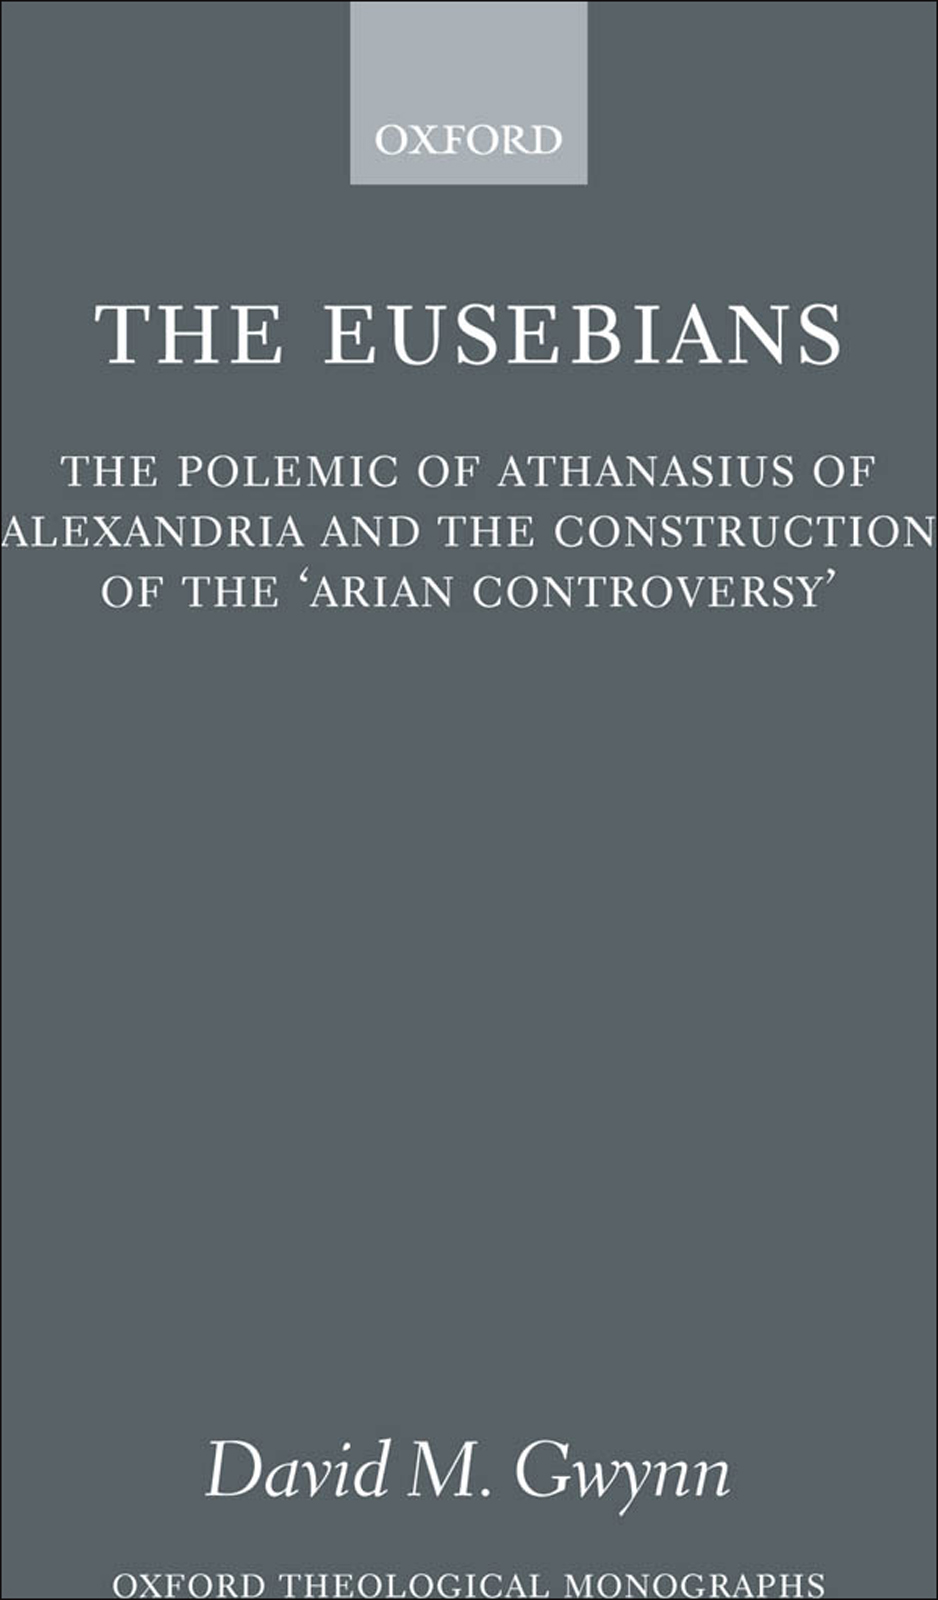 The Eusebians: The Polemic of Athanasius of Alexandria and the Construction of the `Arian Controversy'